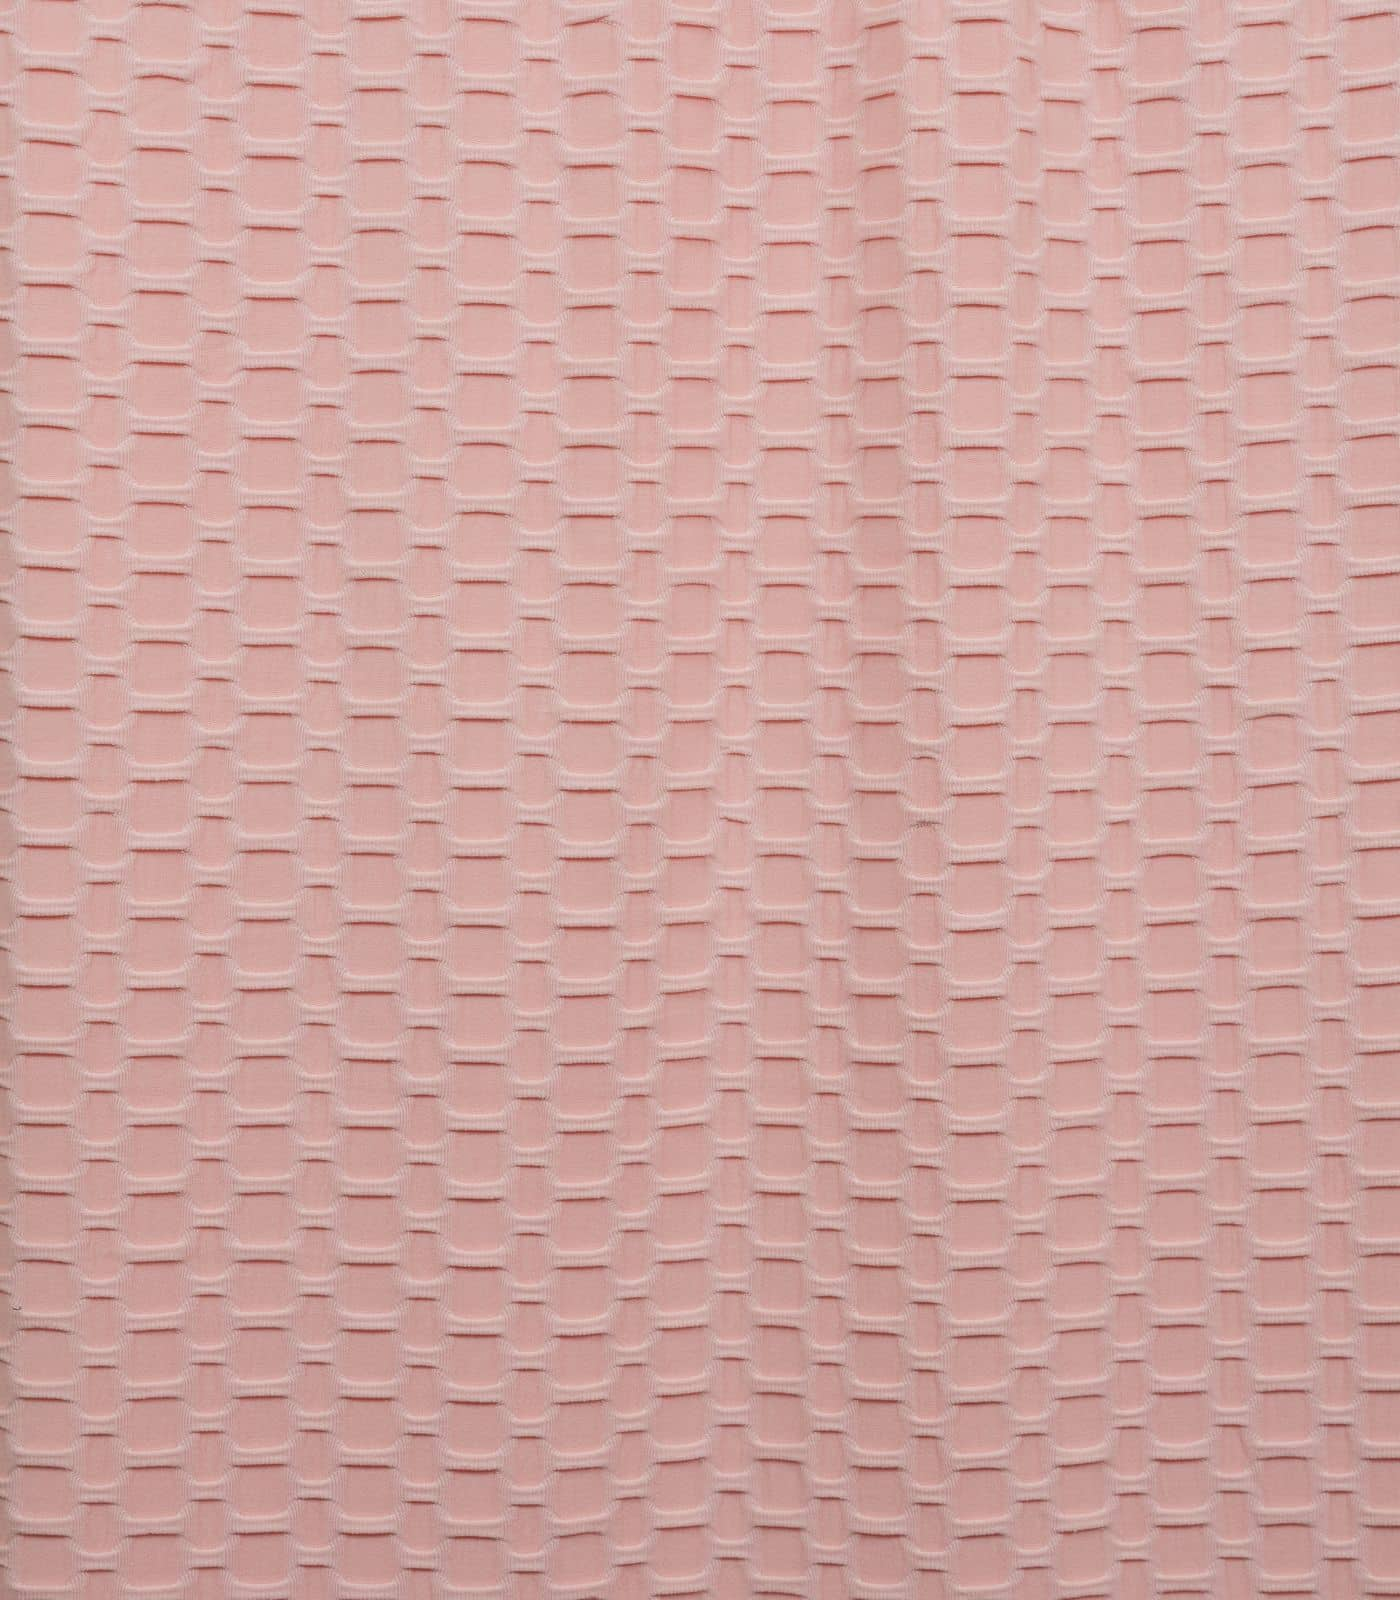 Pink Honeycomb/Solid Poly Spandex Athletic Knit